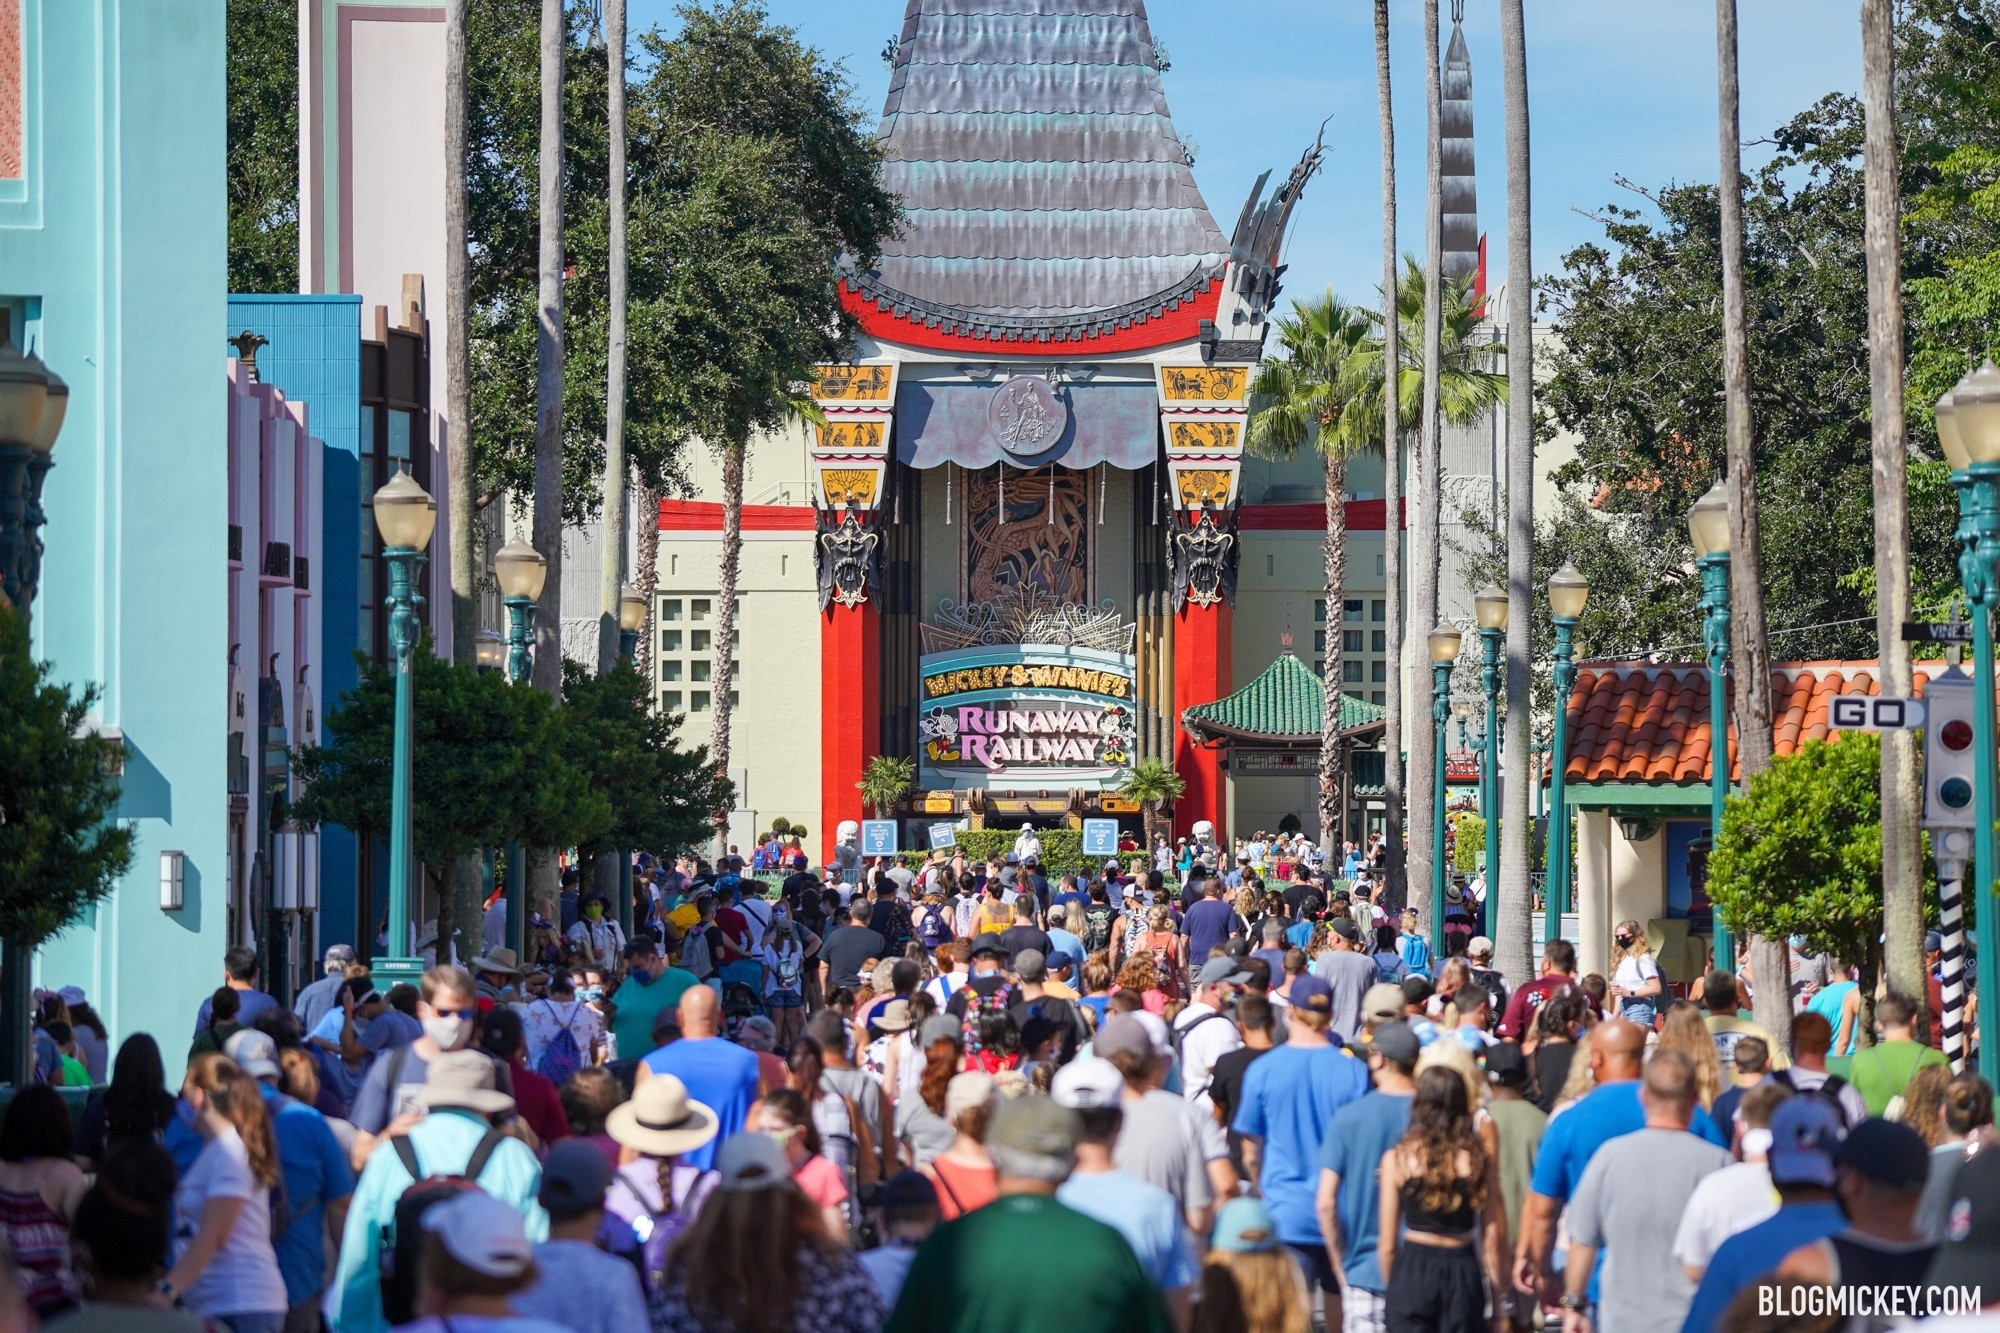 Disney World Area Tops Labor Day Hotel Bookings In Entire-Labor Day 2021 Wdw Crowds